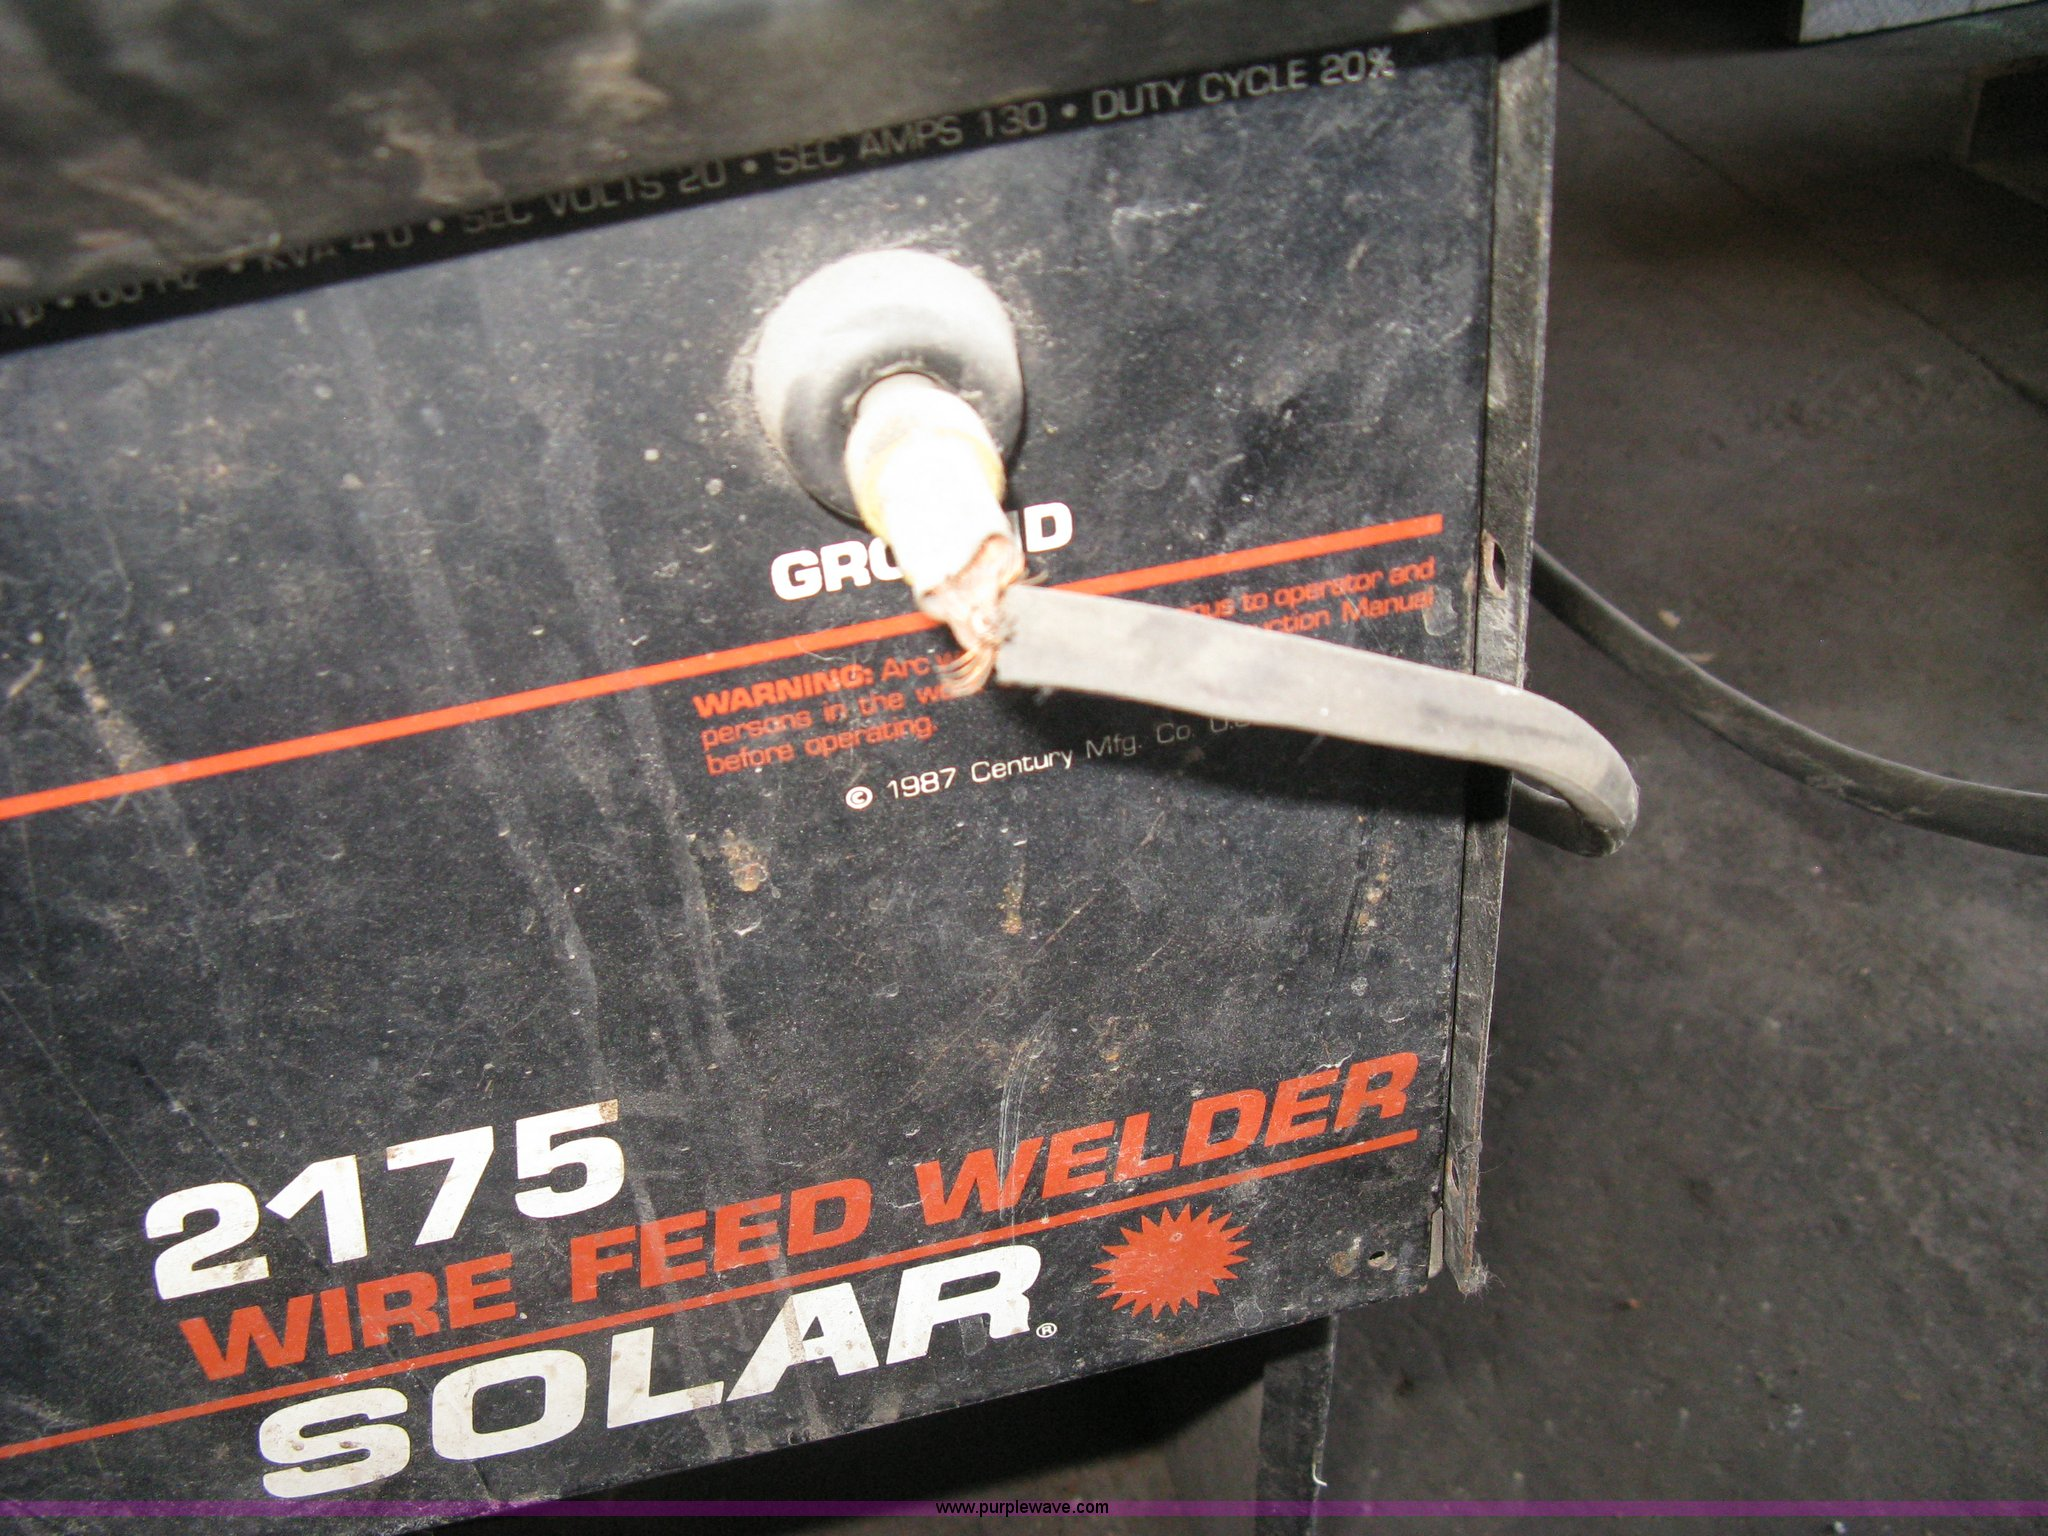 Solar 2175 wire feed welder   Item AX9917   SOLD! April 10 C... on solar brand welders, solar welders parts list, solar mig,